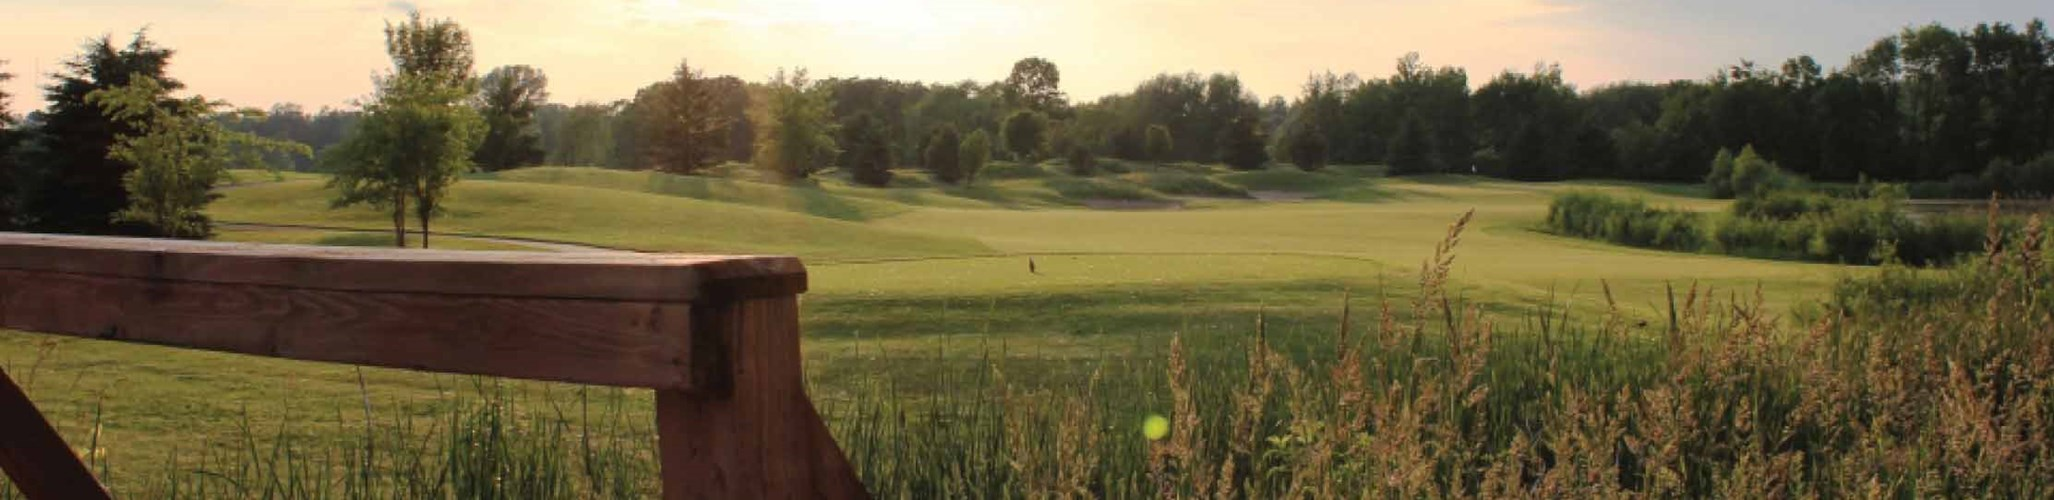 Mascoutin Golf Package